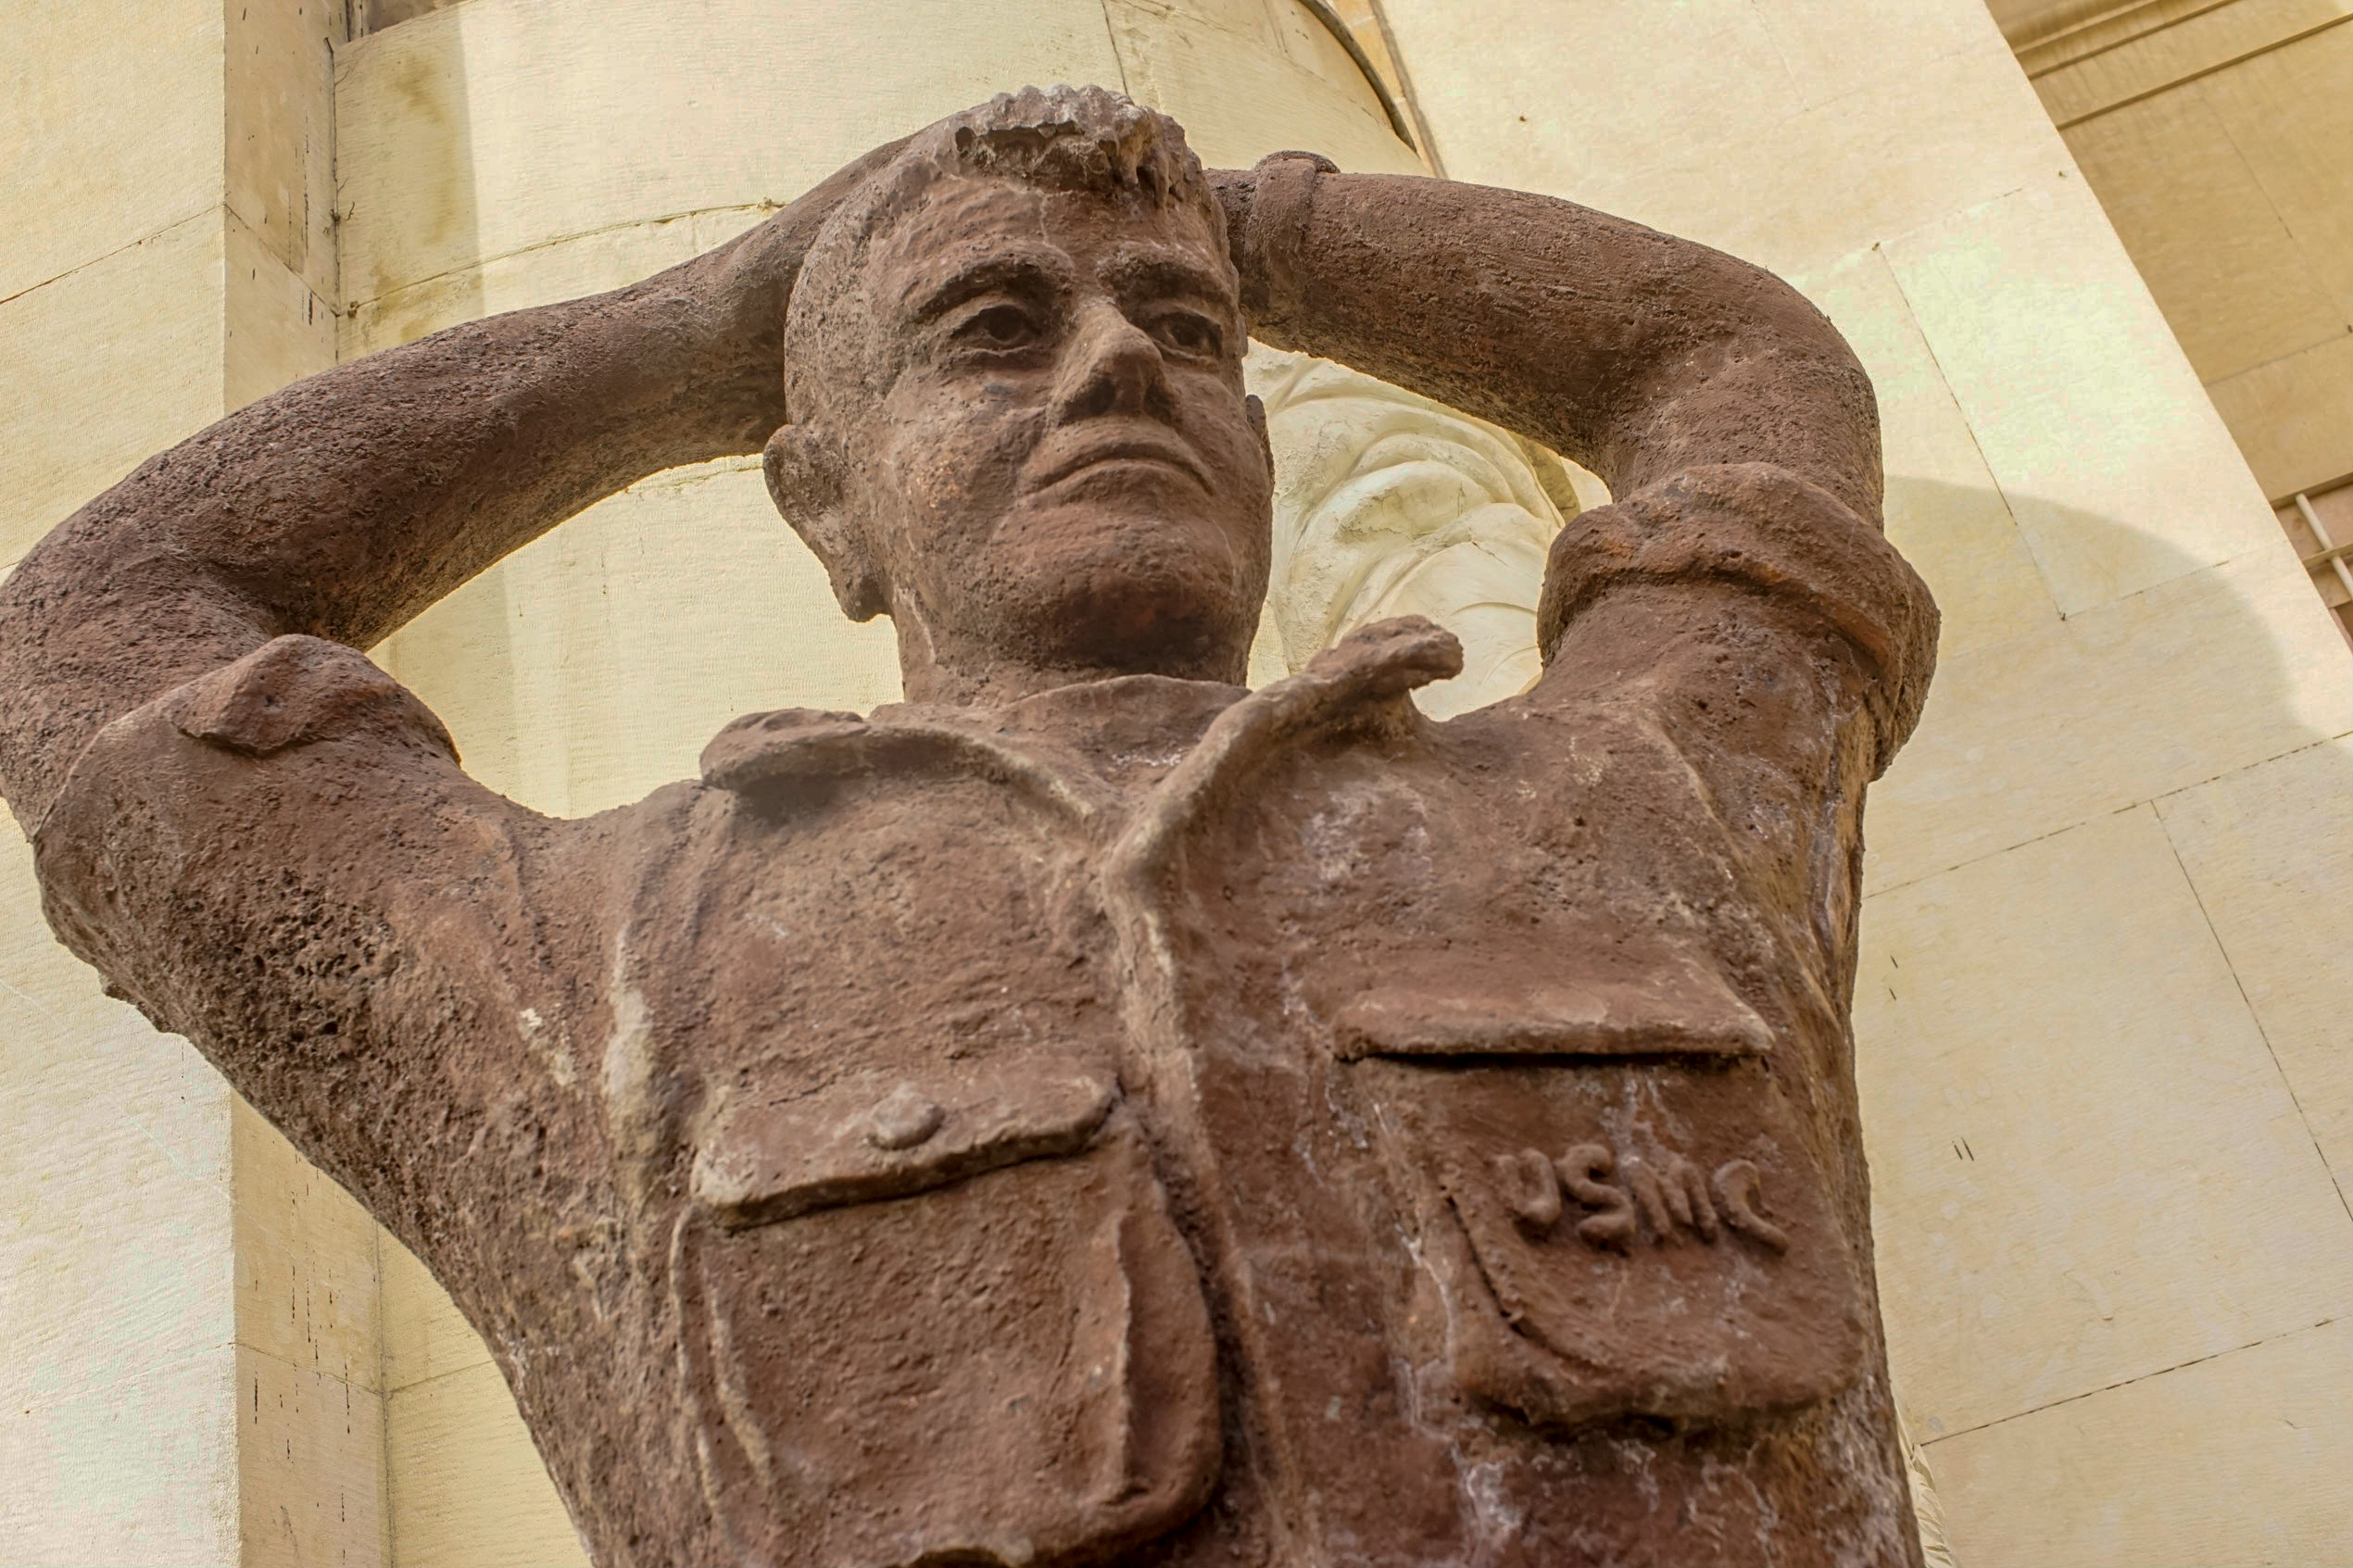 One of two plaster statues outside the main embassy building.  This one of a U.S. Marine seems to be copying the image of captured Marine Corporal Steve Kirtley, who was one of the Marines stationed at the embassy in 1979, and was photographed with other hostages.